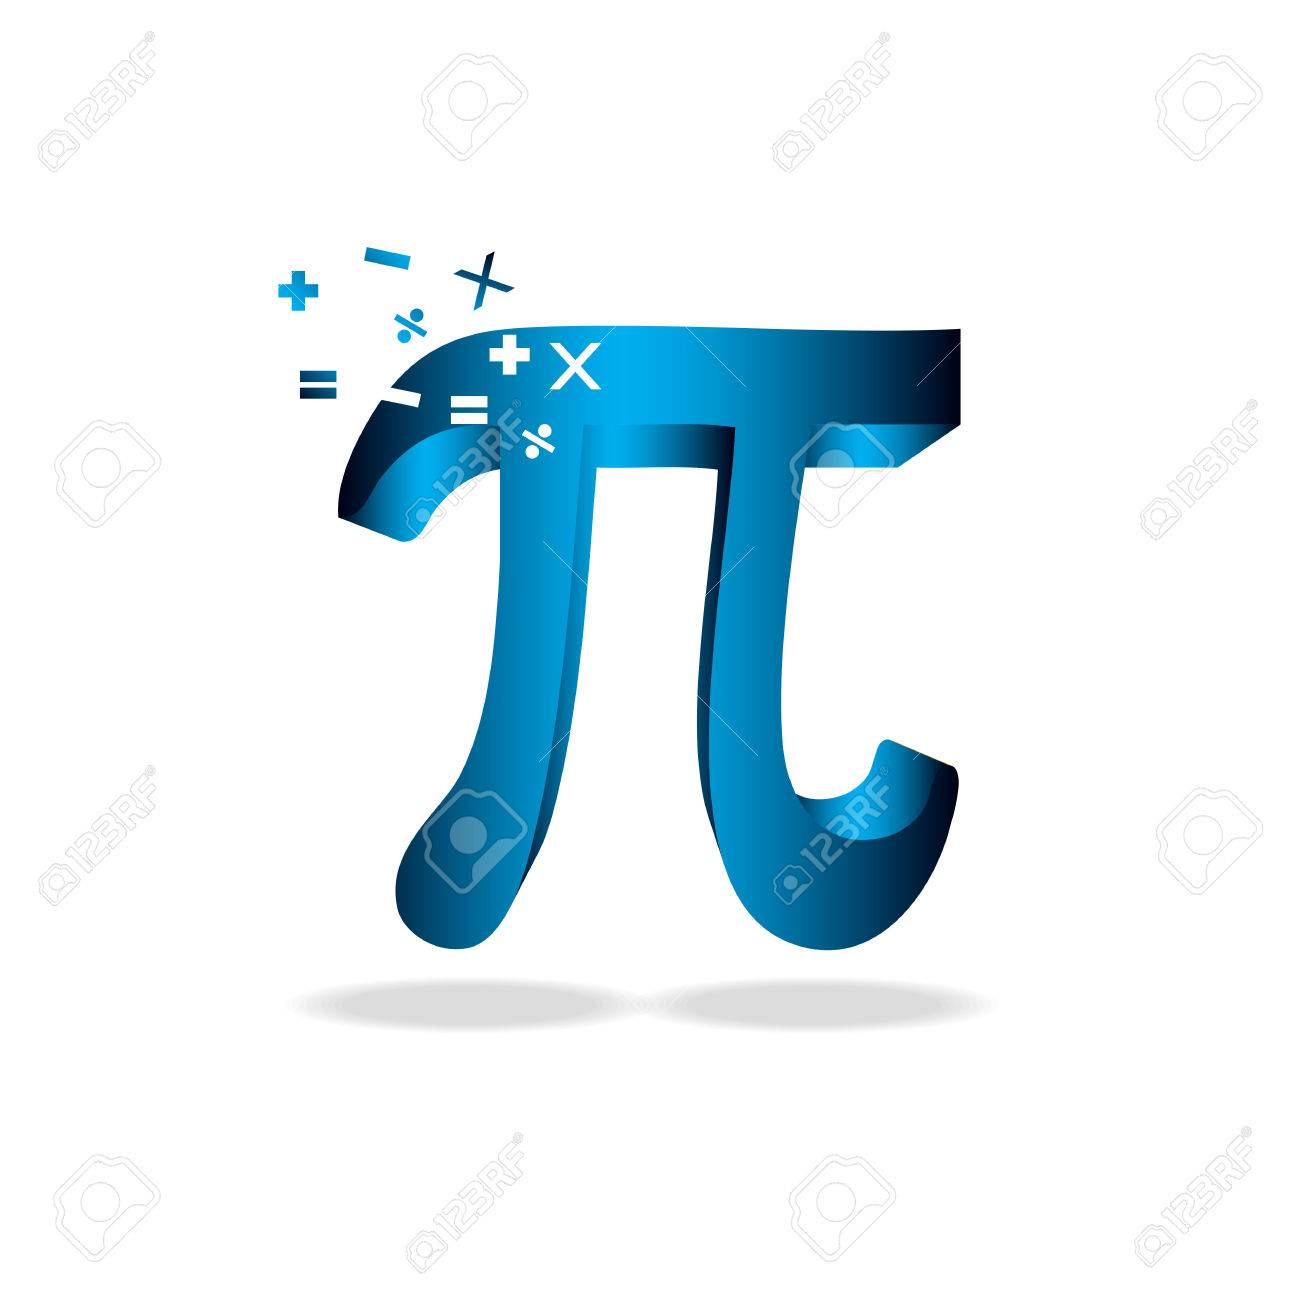 Pi day vector background mathematical constant irrational number mathematical constant irrational number greek letter abstract digital publicscrutiny Image collections